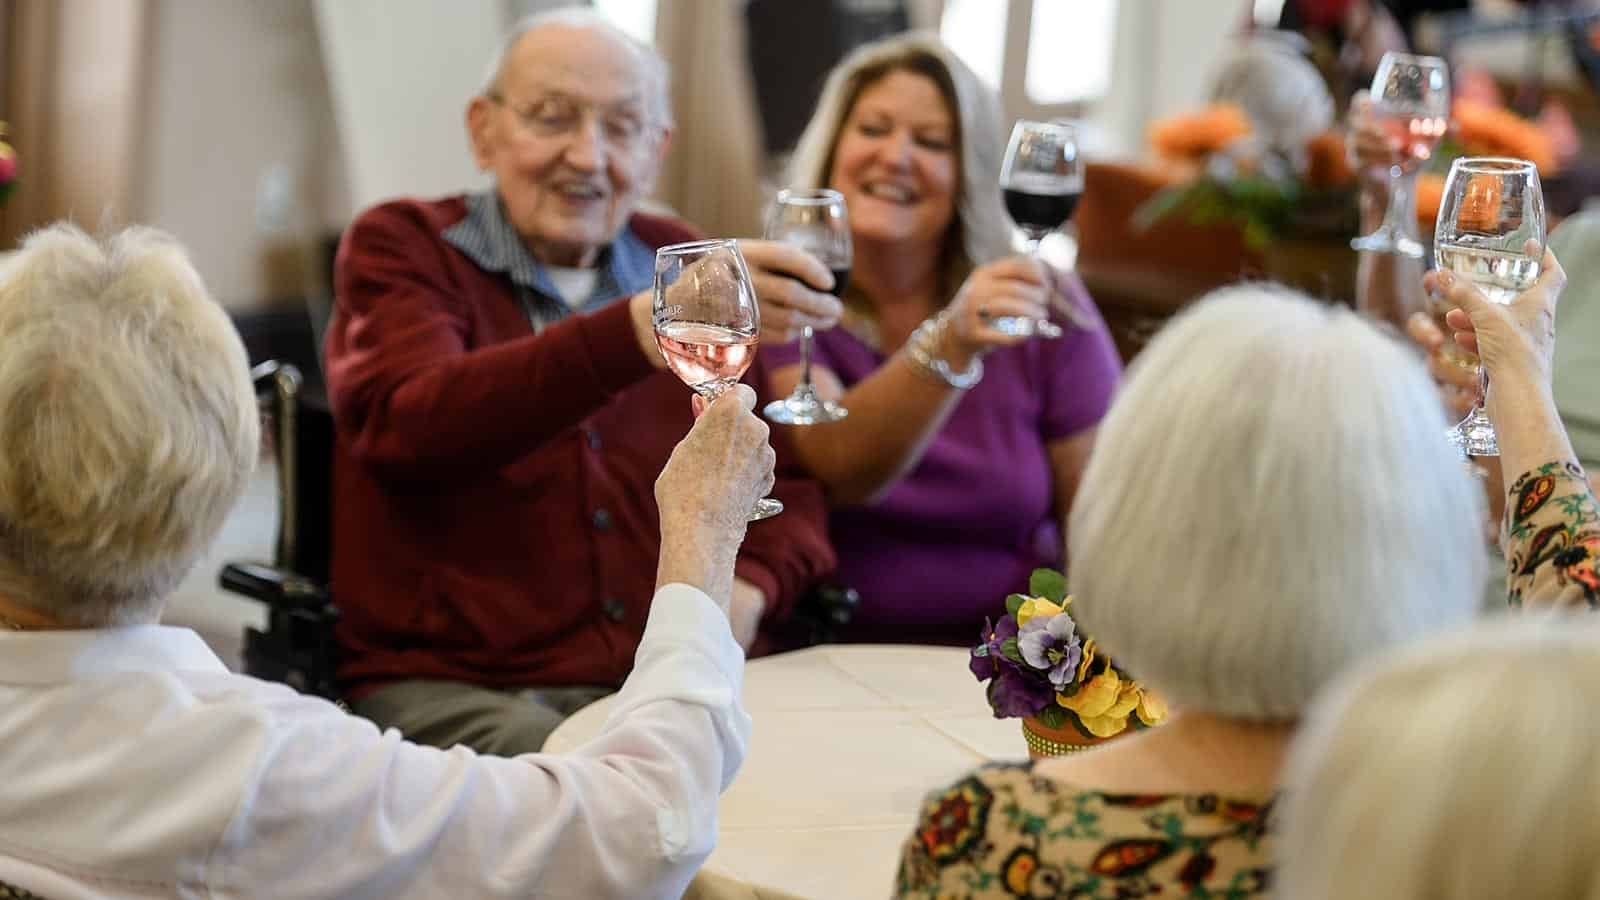 Senior group toasting wine glasses